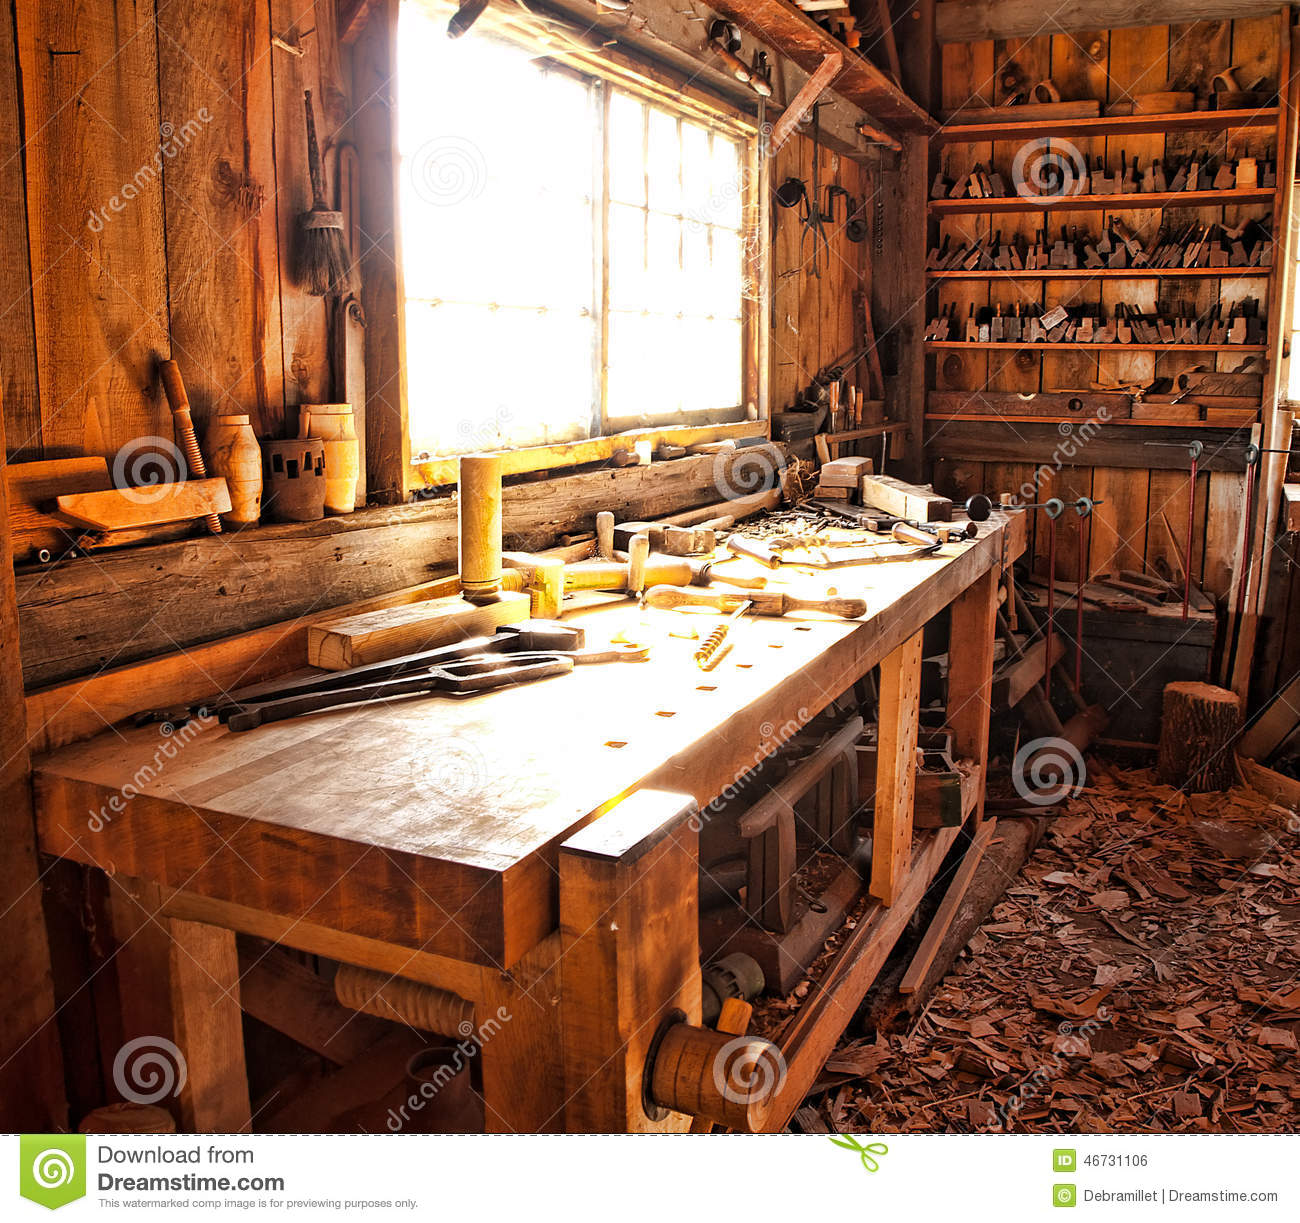 Woodworkers Shop Stock Photo Image Of Messy Barn Countryside